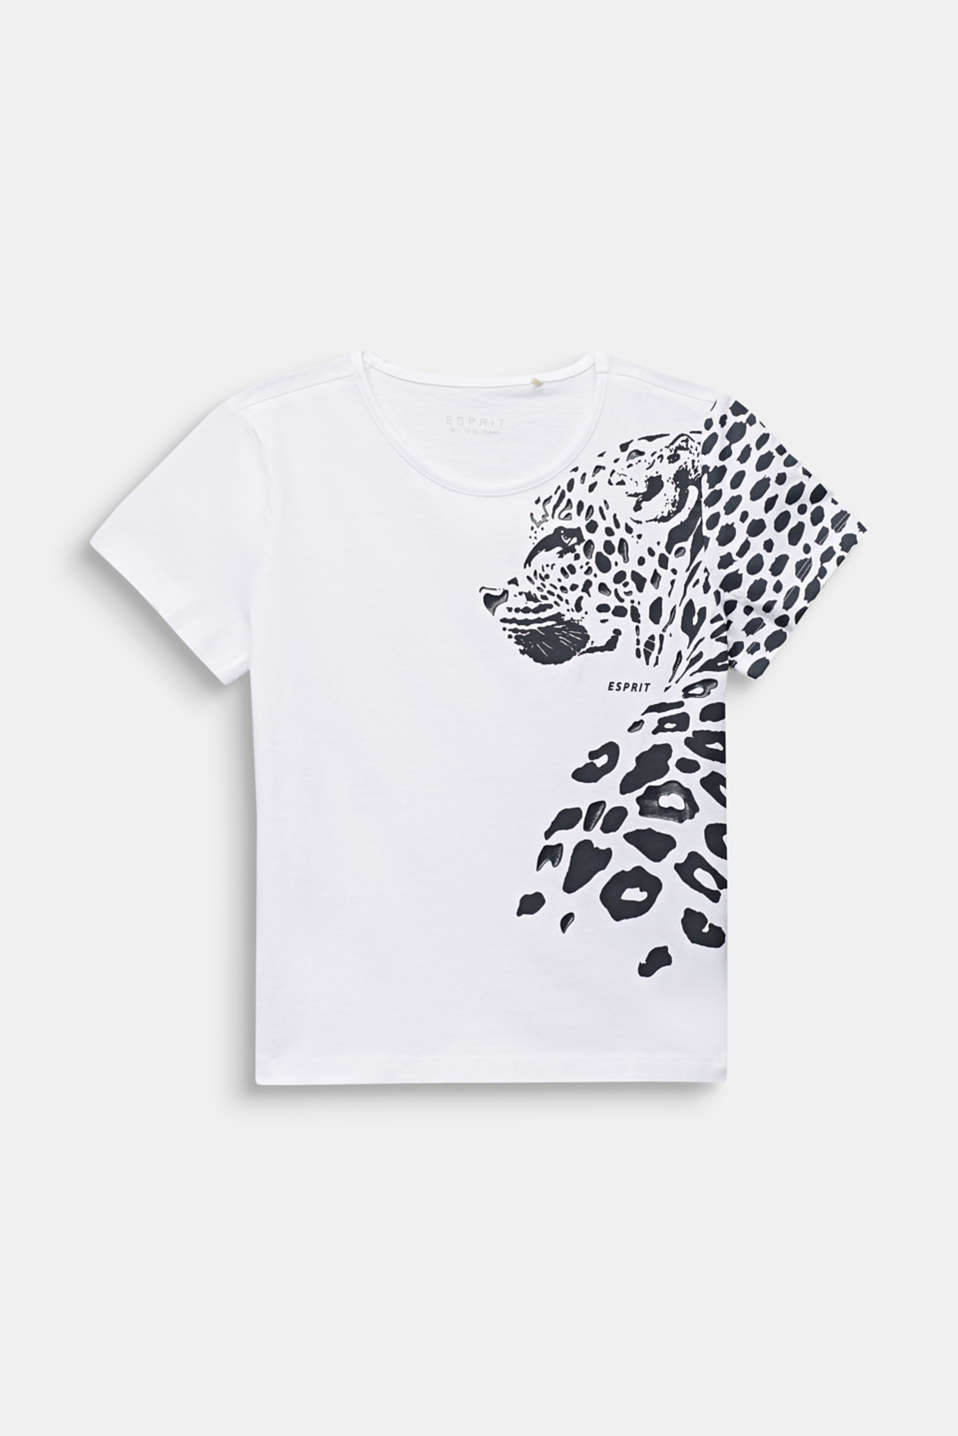 Esprit - T-shirt with leopard print, 100% cotton